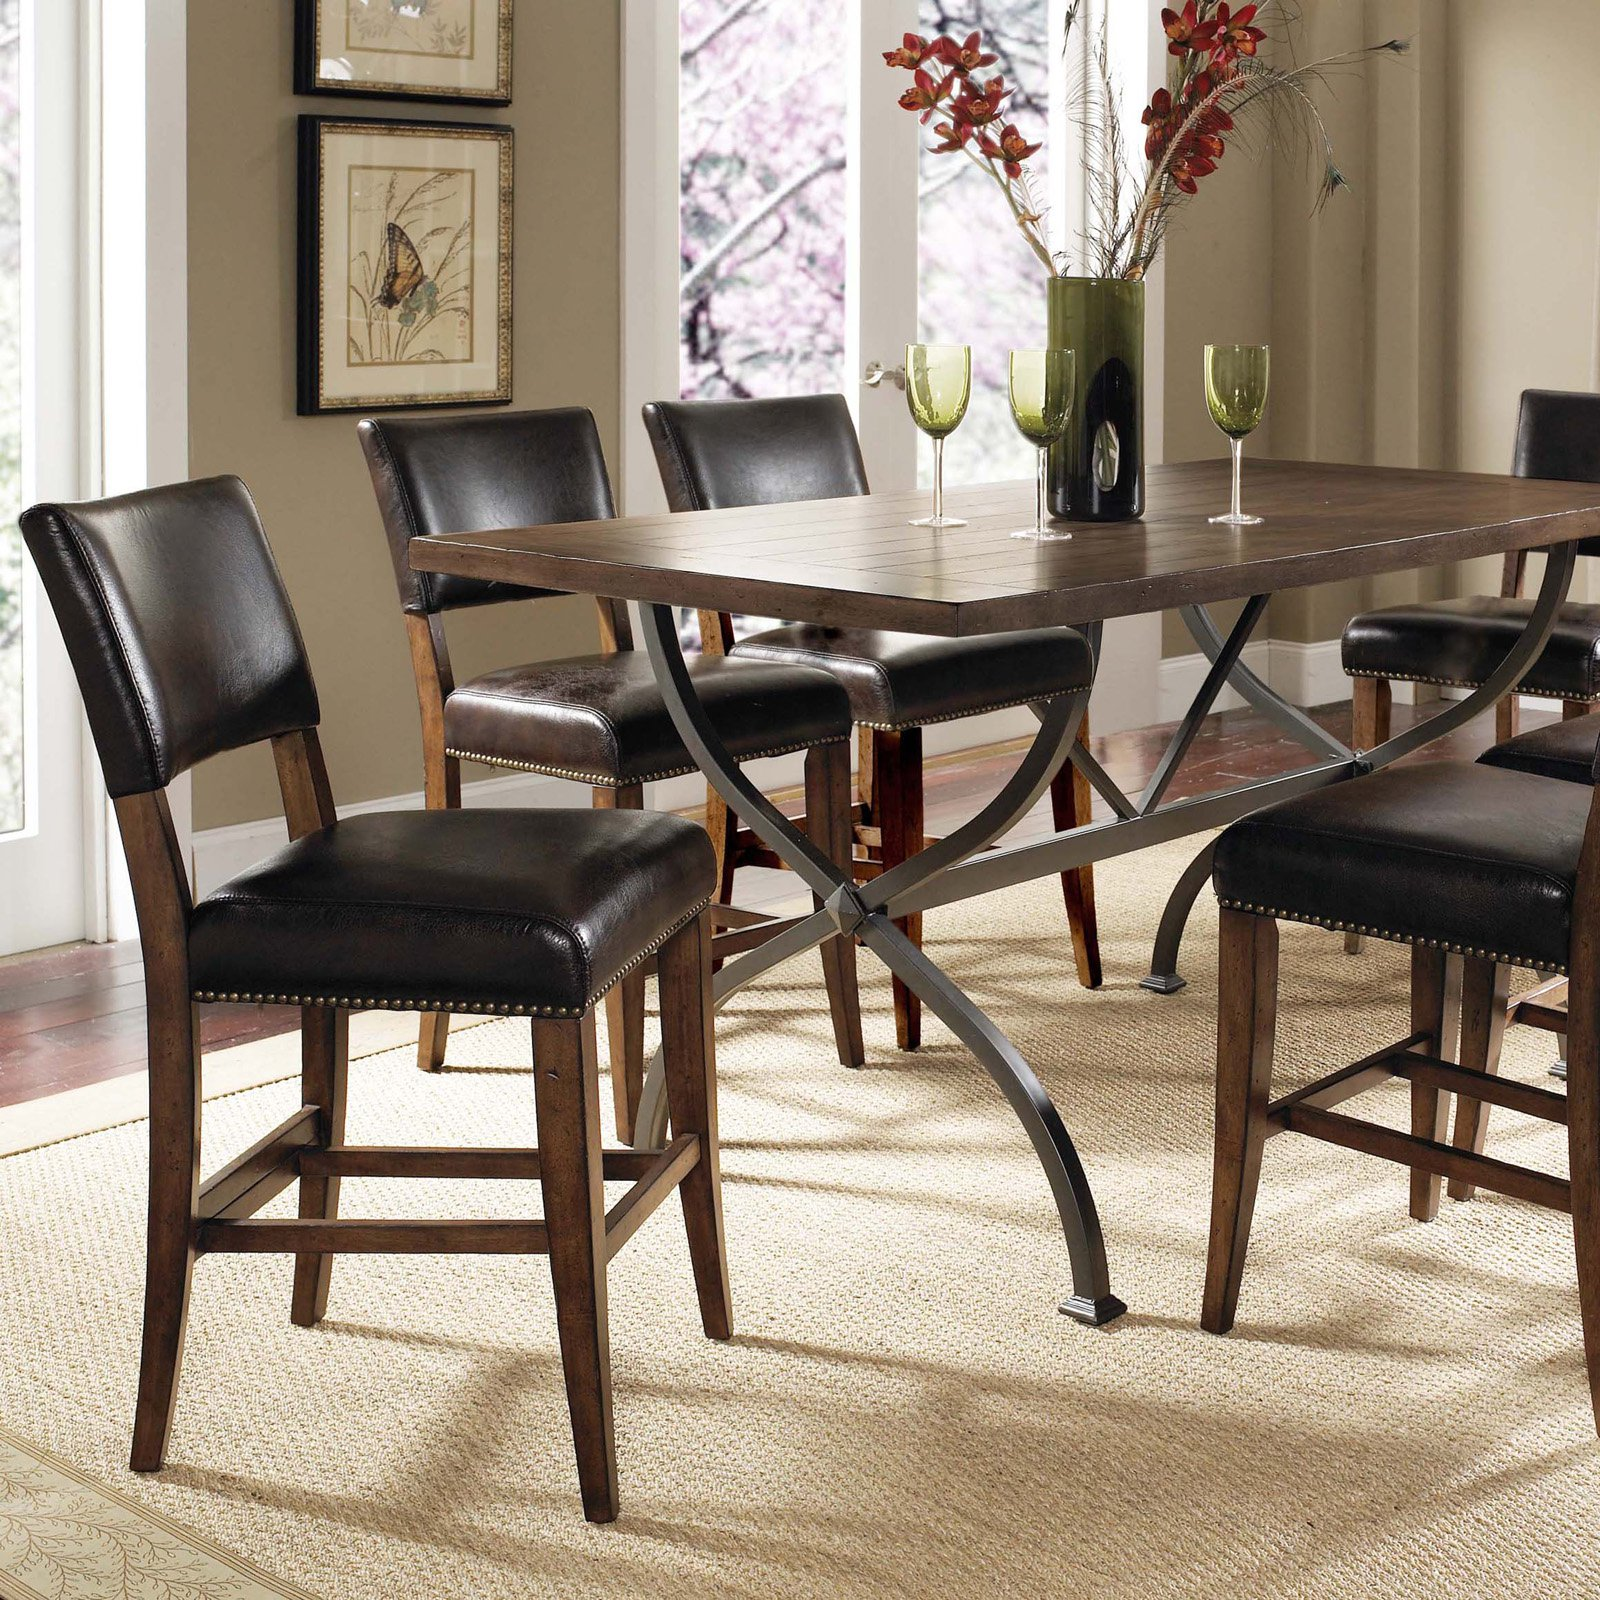 Hillsdale Cameron 7 Piece Counter Height Rectangle Wood Dining Table Set with Parson Chairs